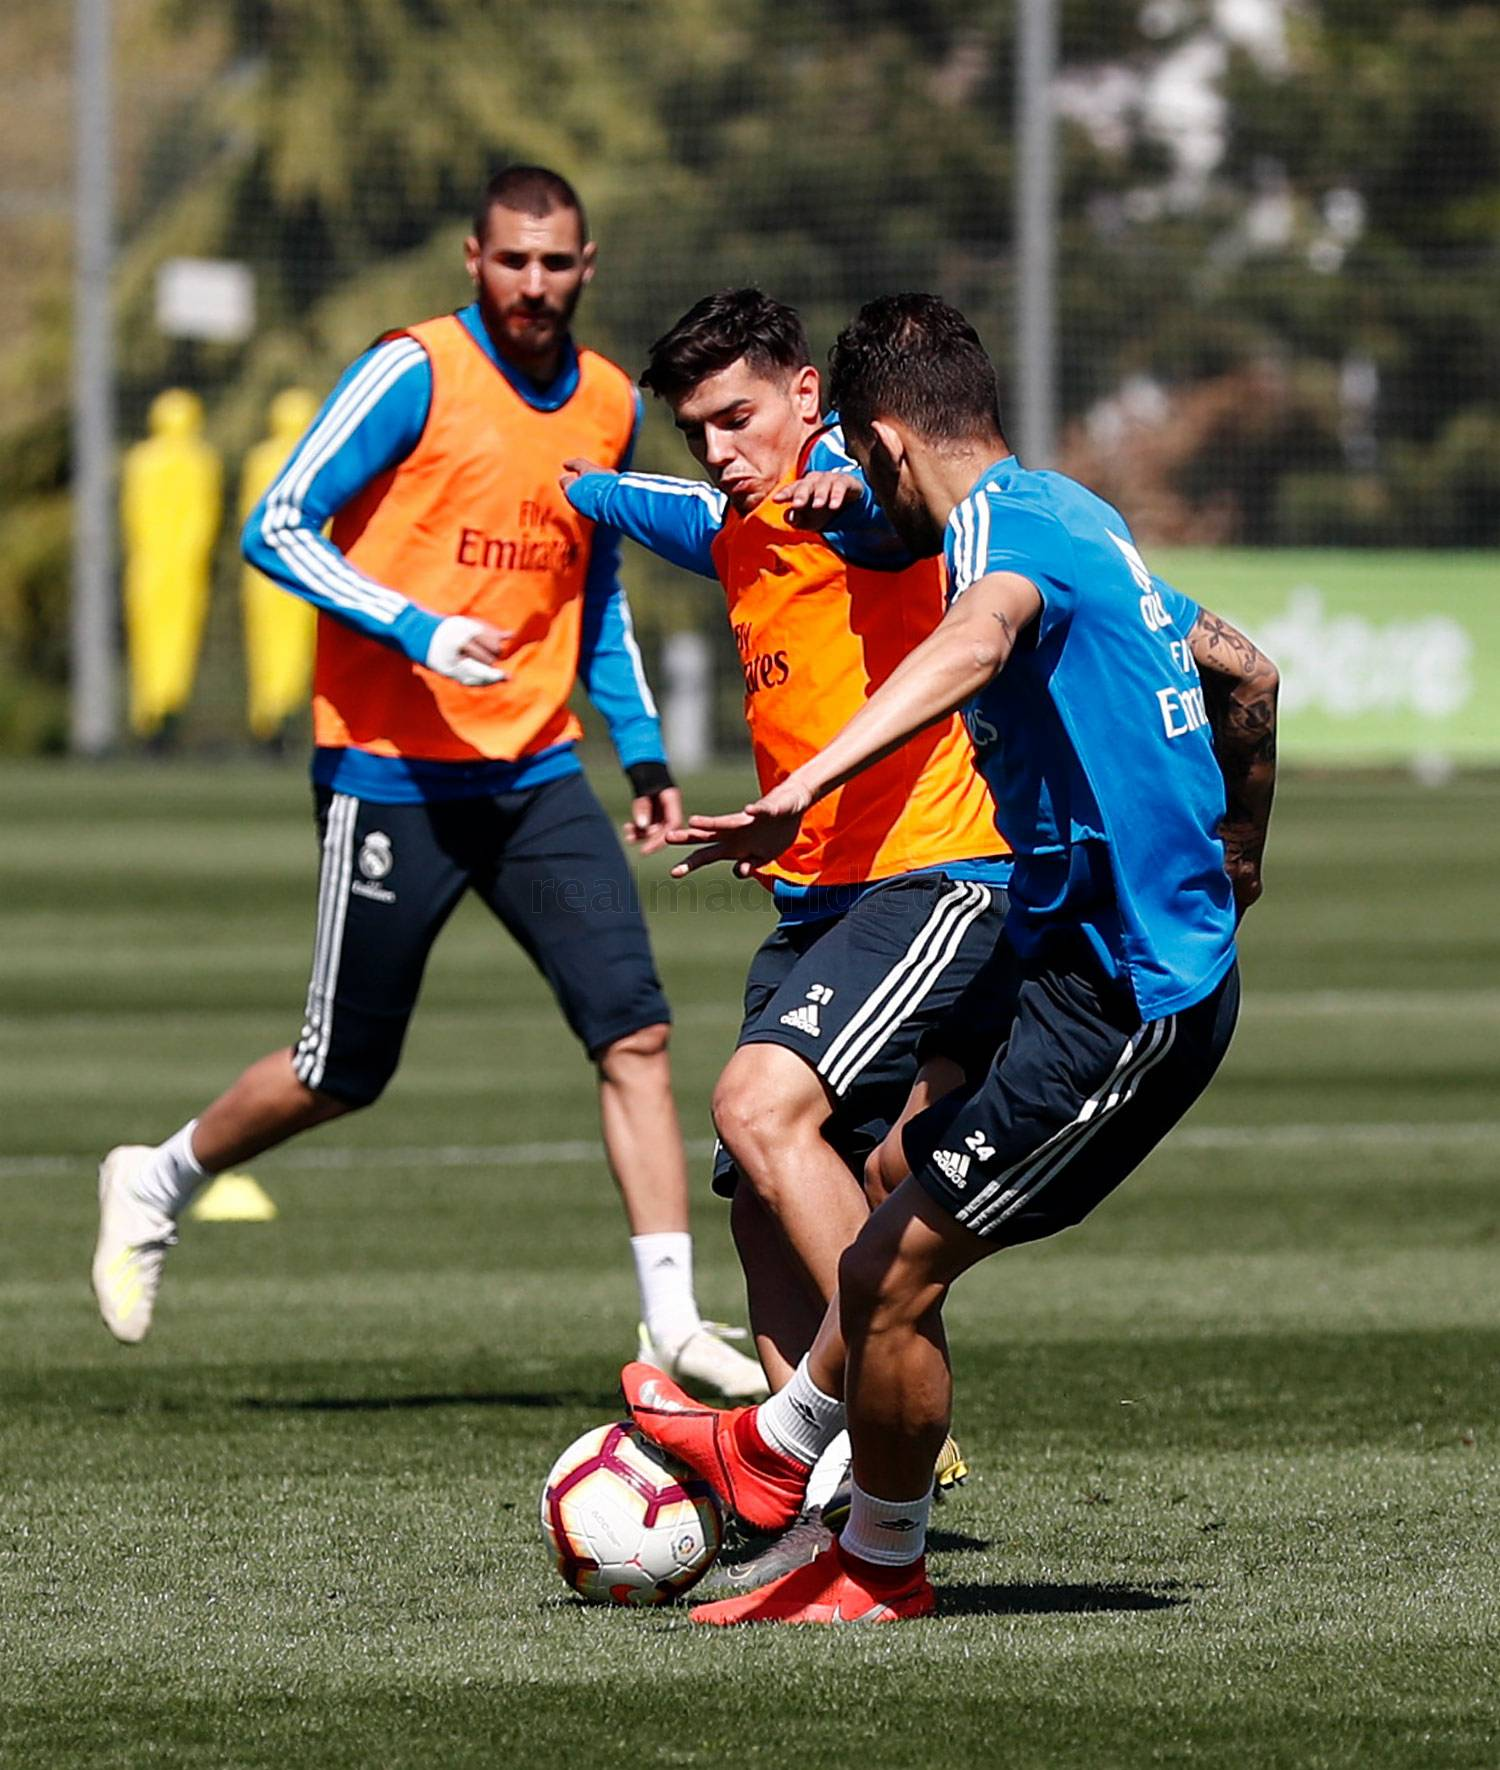 Real Madrid - Entrenamiento del Real Madrid - 13-04-2019